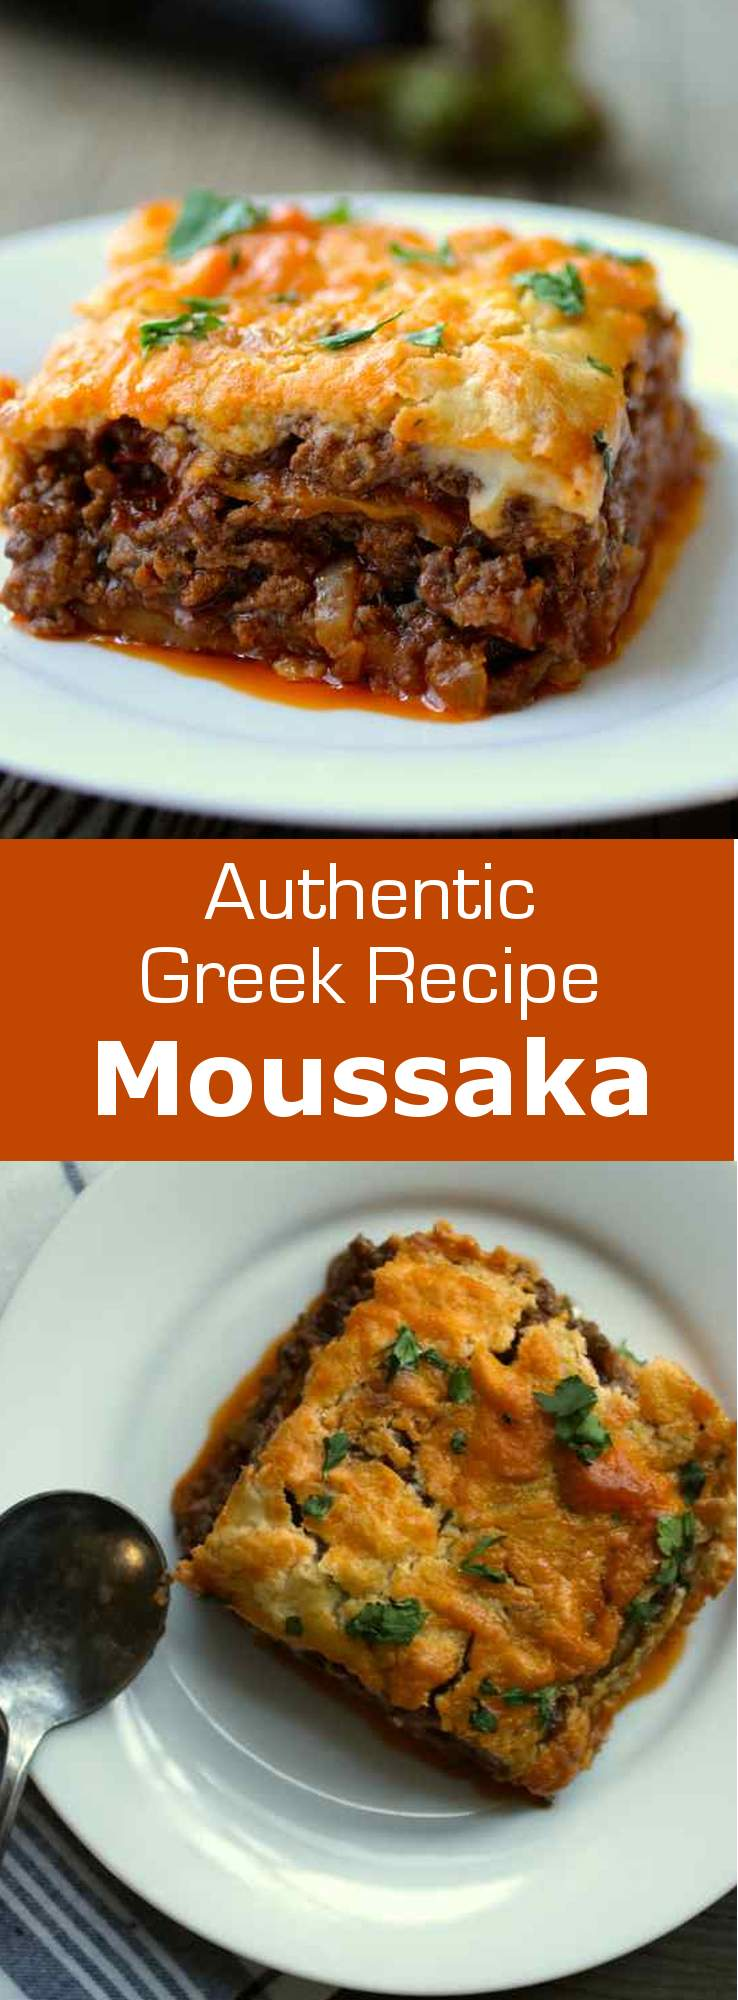 Moussaka traditional greek recipe 196 flavors moussaka is the iconic hearty greek dish composed of layers of eggplants saucy ground meat forumfinder Image collections